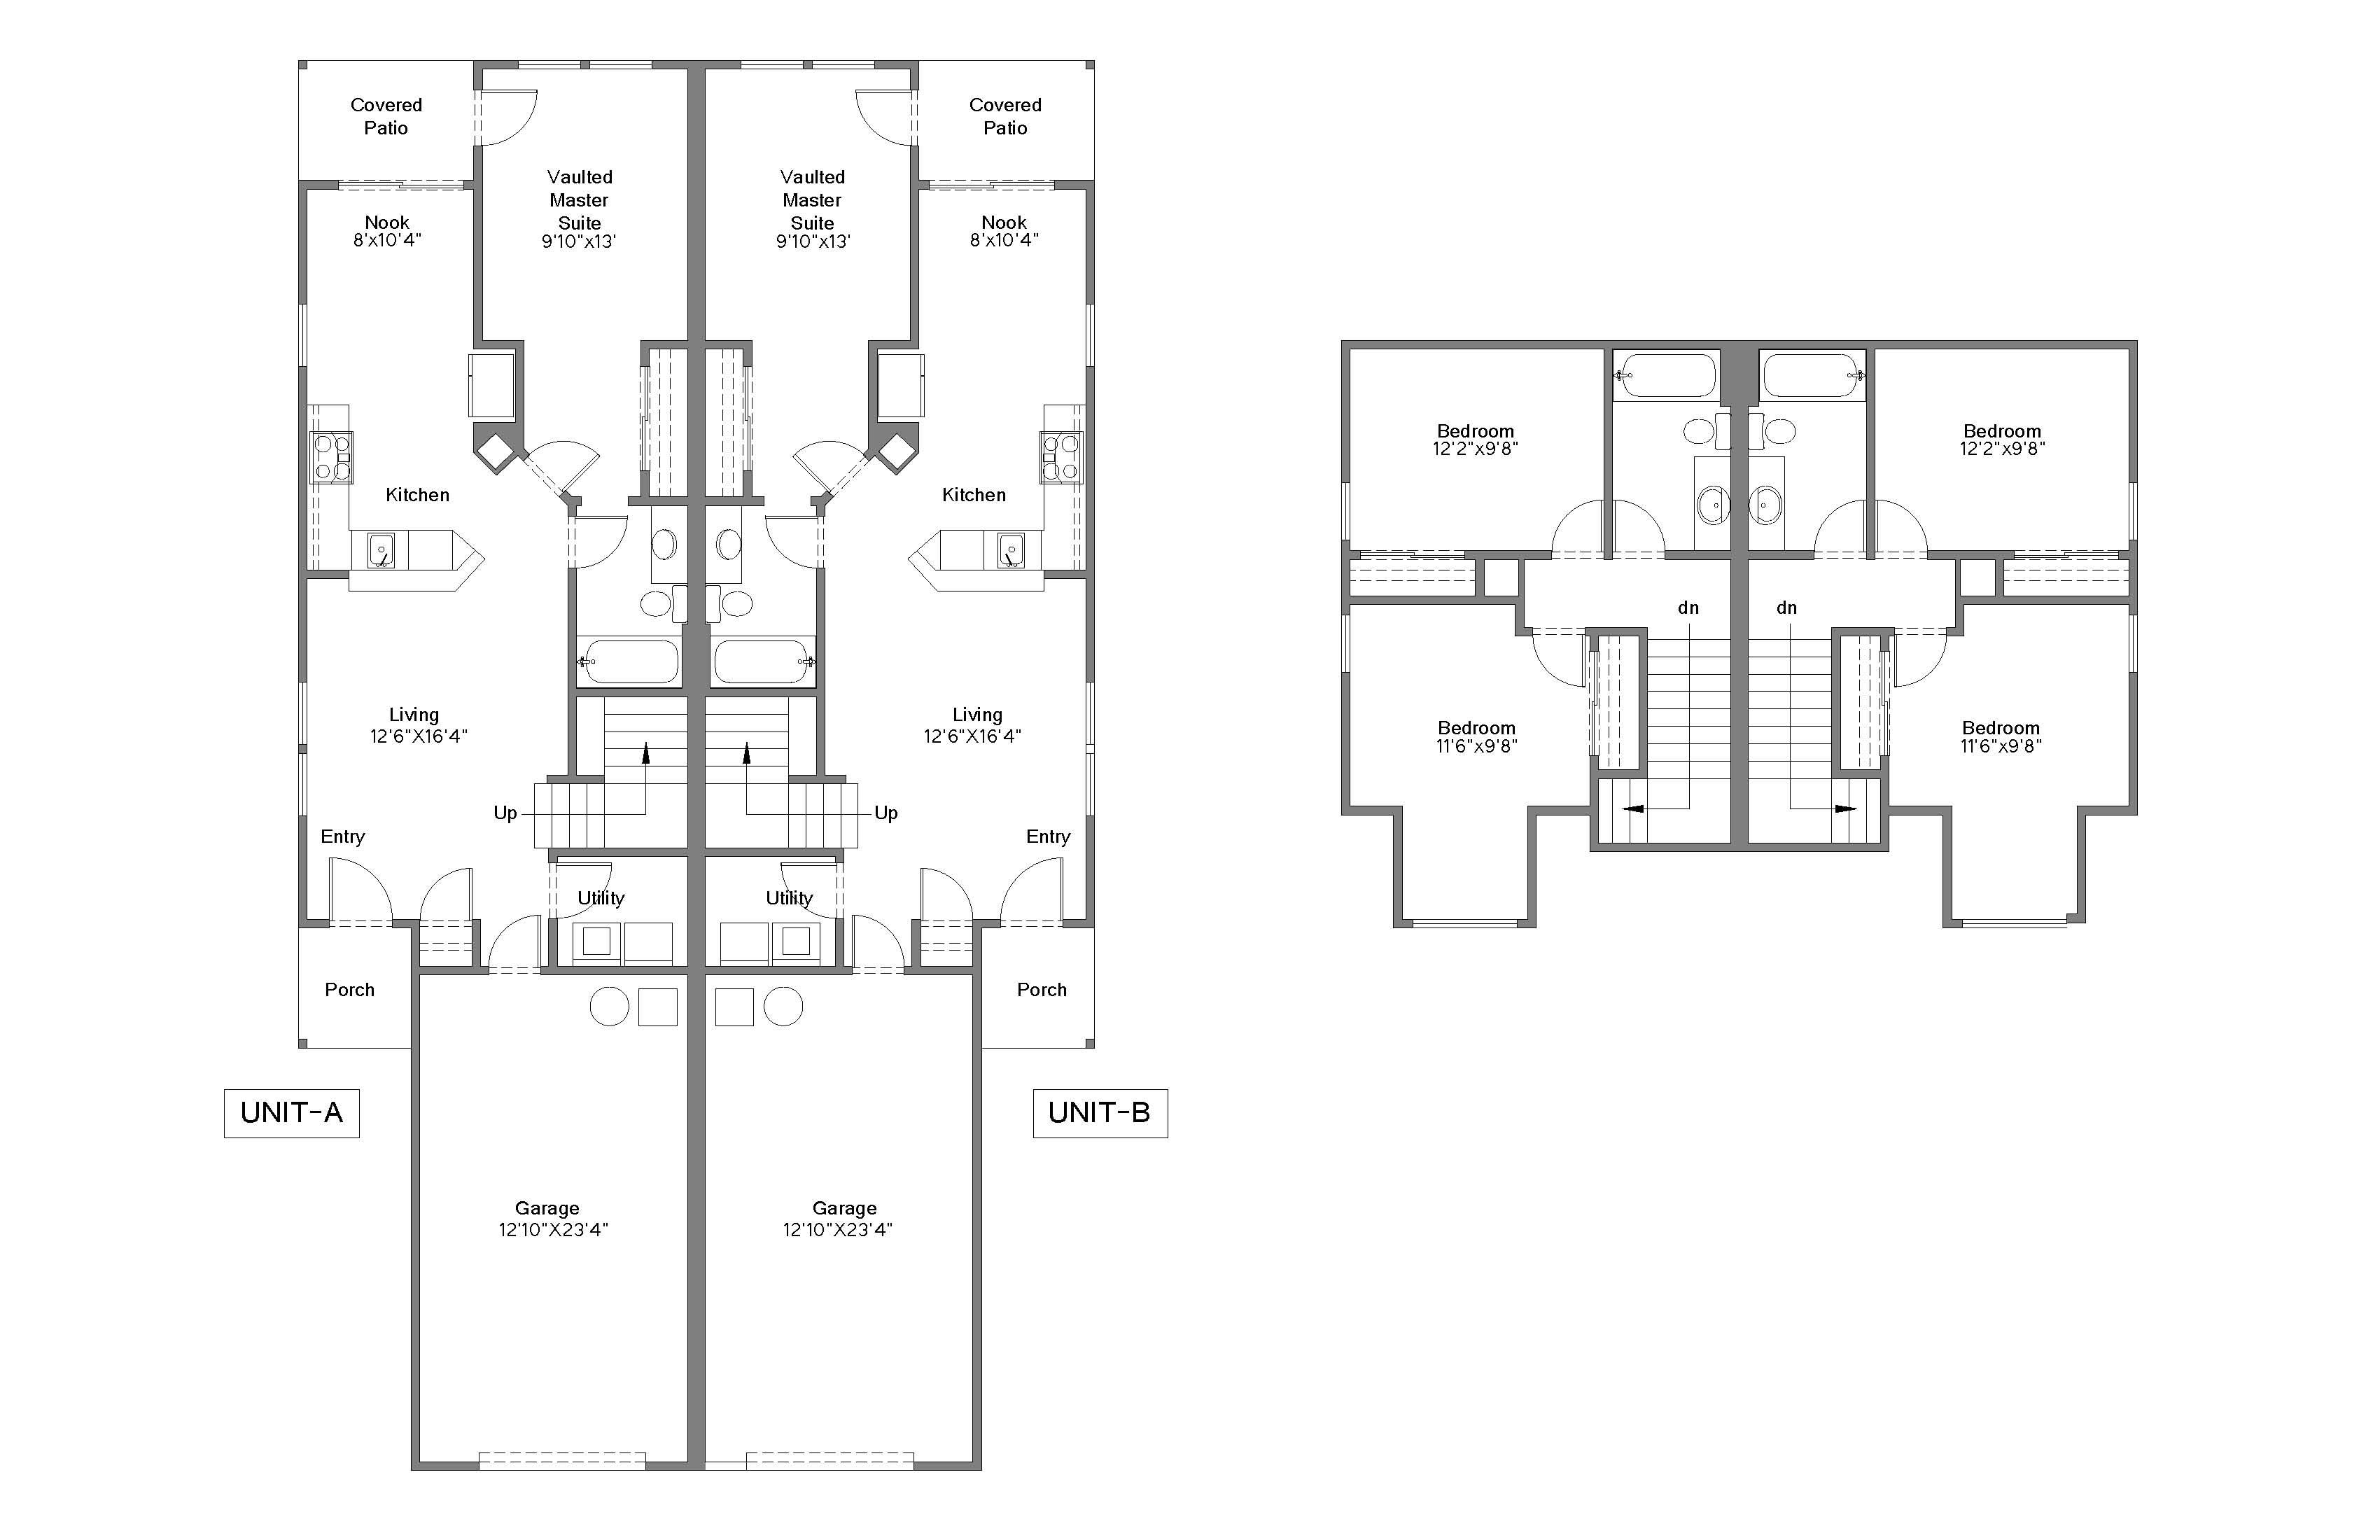 Architectural Floor Plan Floor Plan With Autocad Drawings Autocad Architectural Drawings